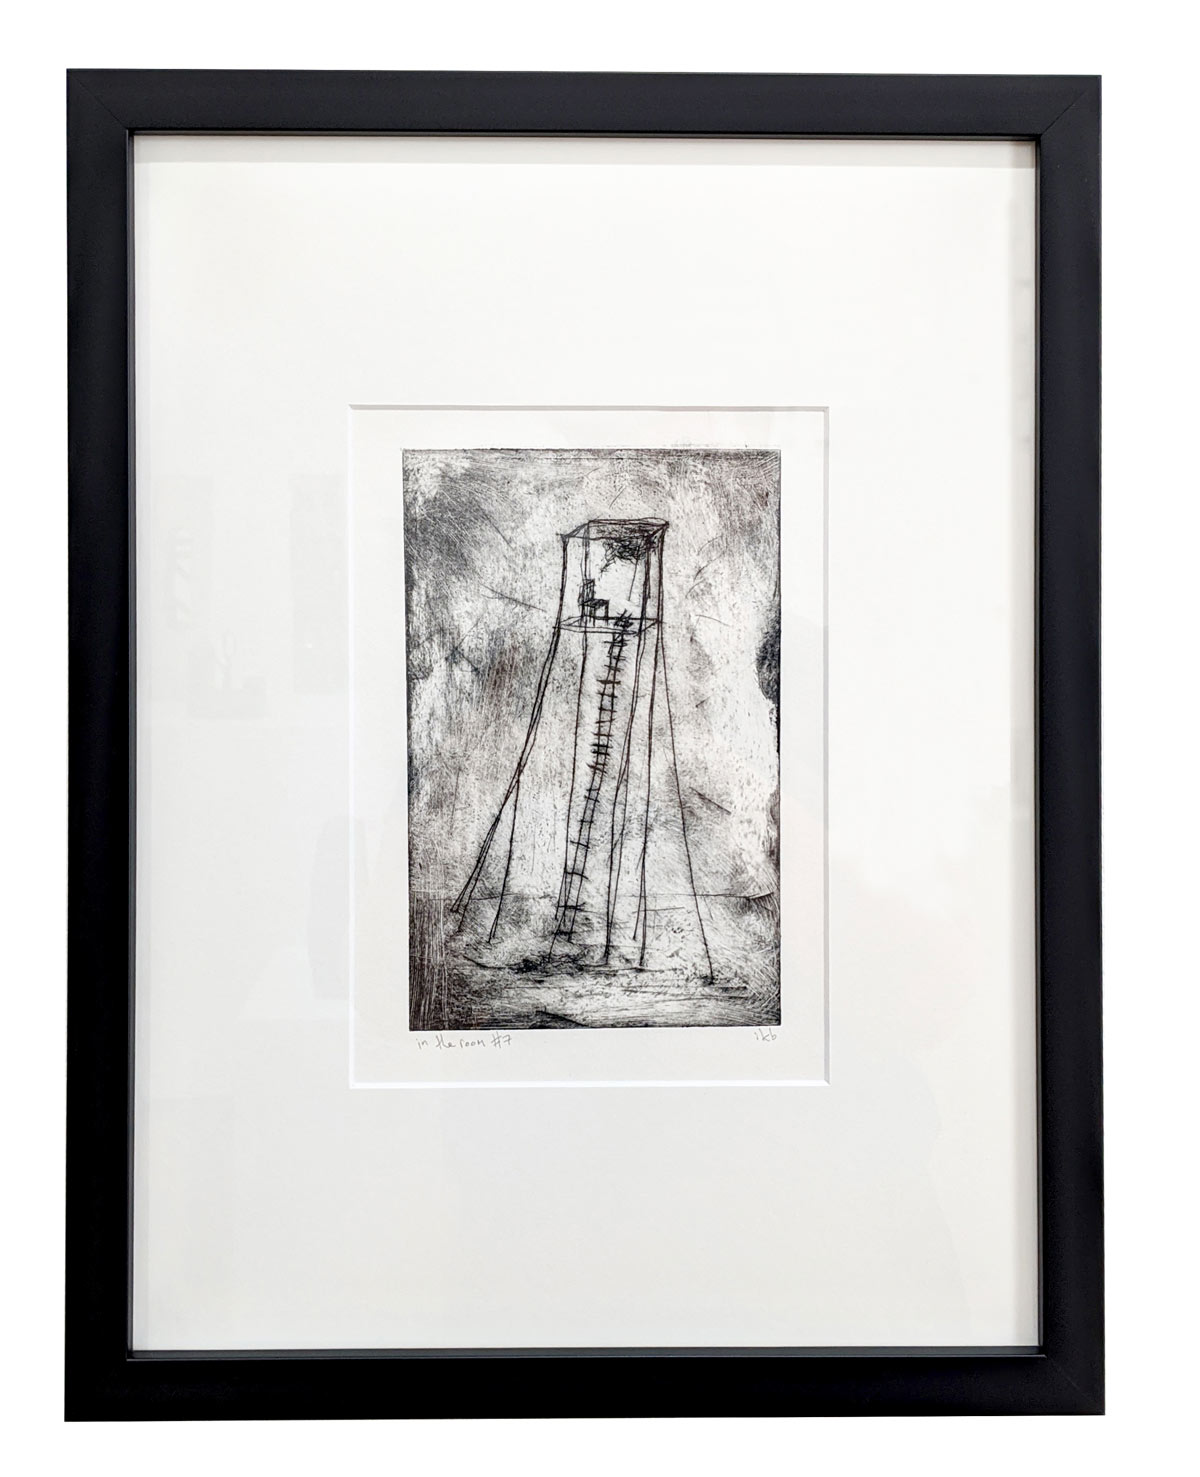 Framed etching depicting a chair in a tower